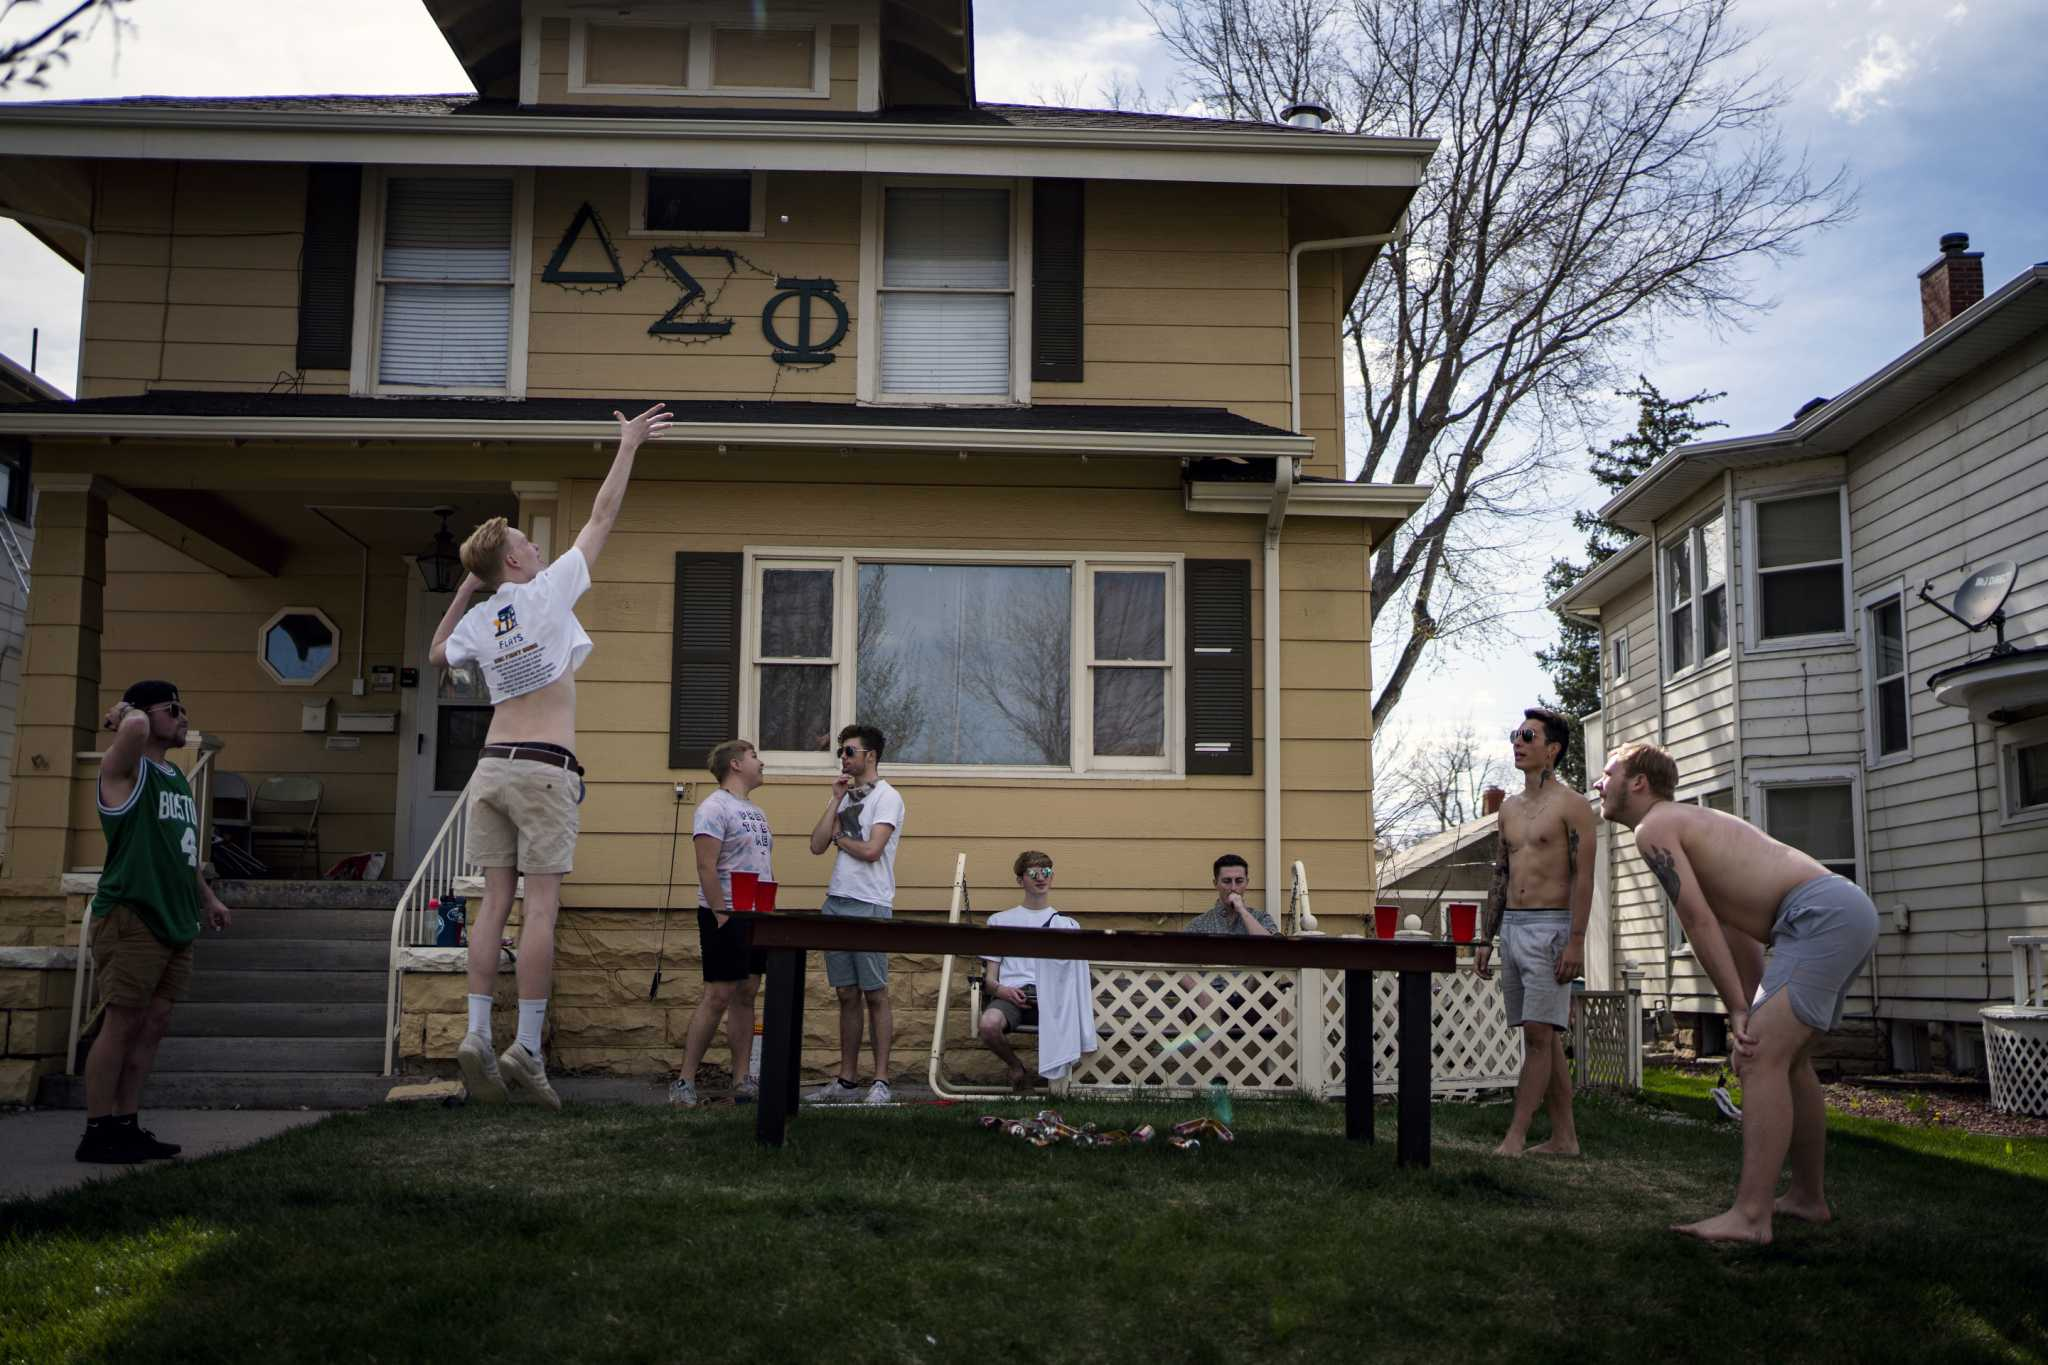 At fraternities, an alarming spike in cases